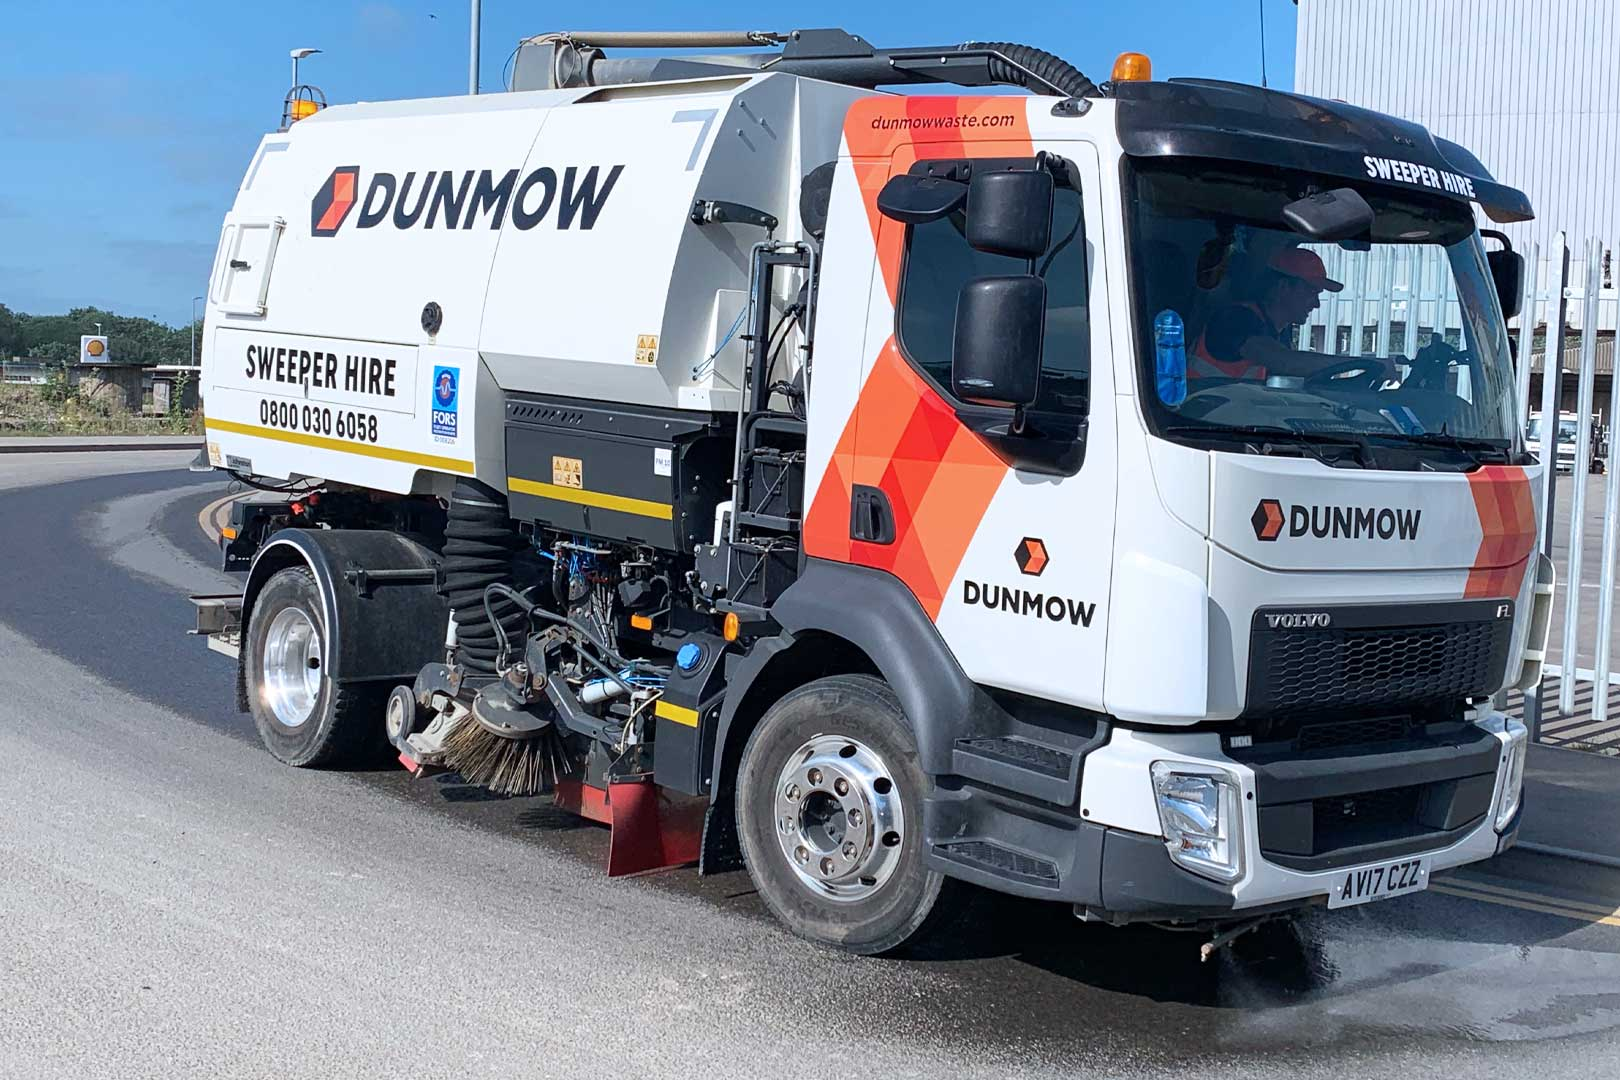 1-Dunmow-RS-Road-Sweeper-01